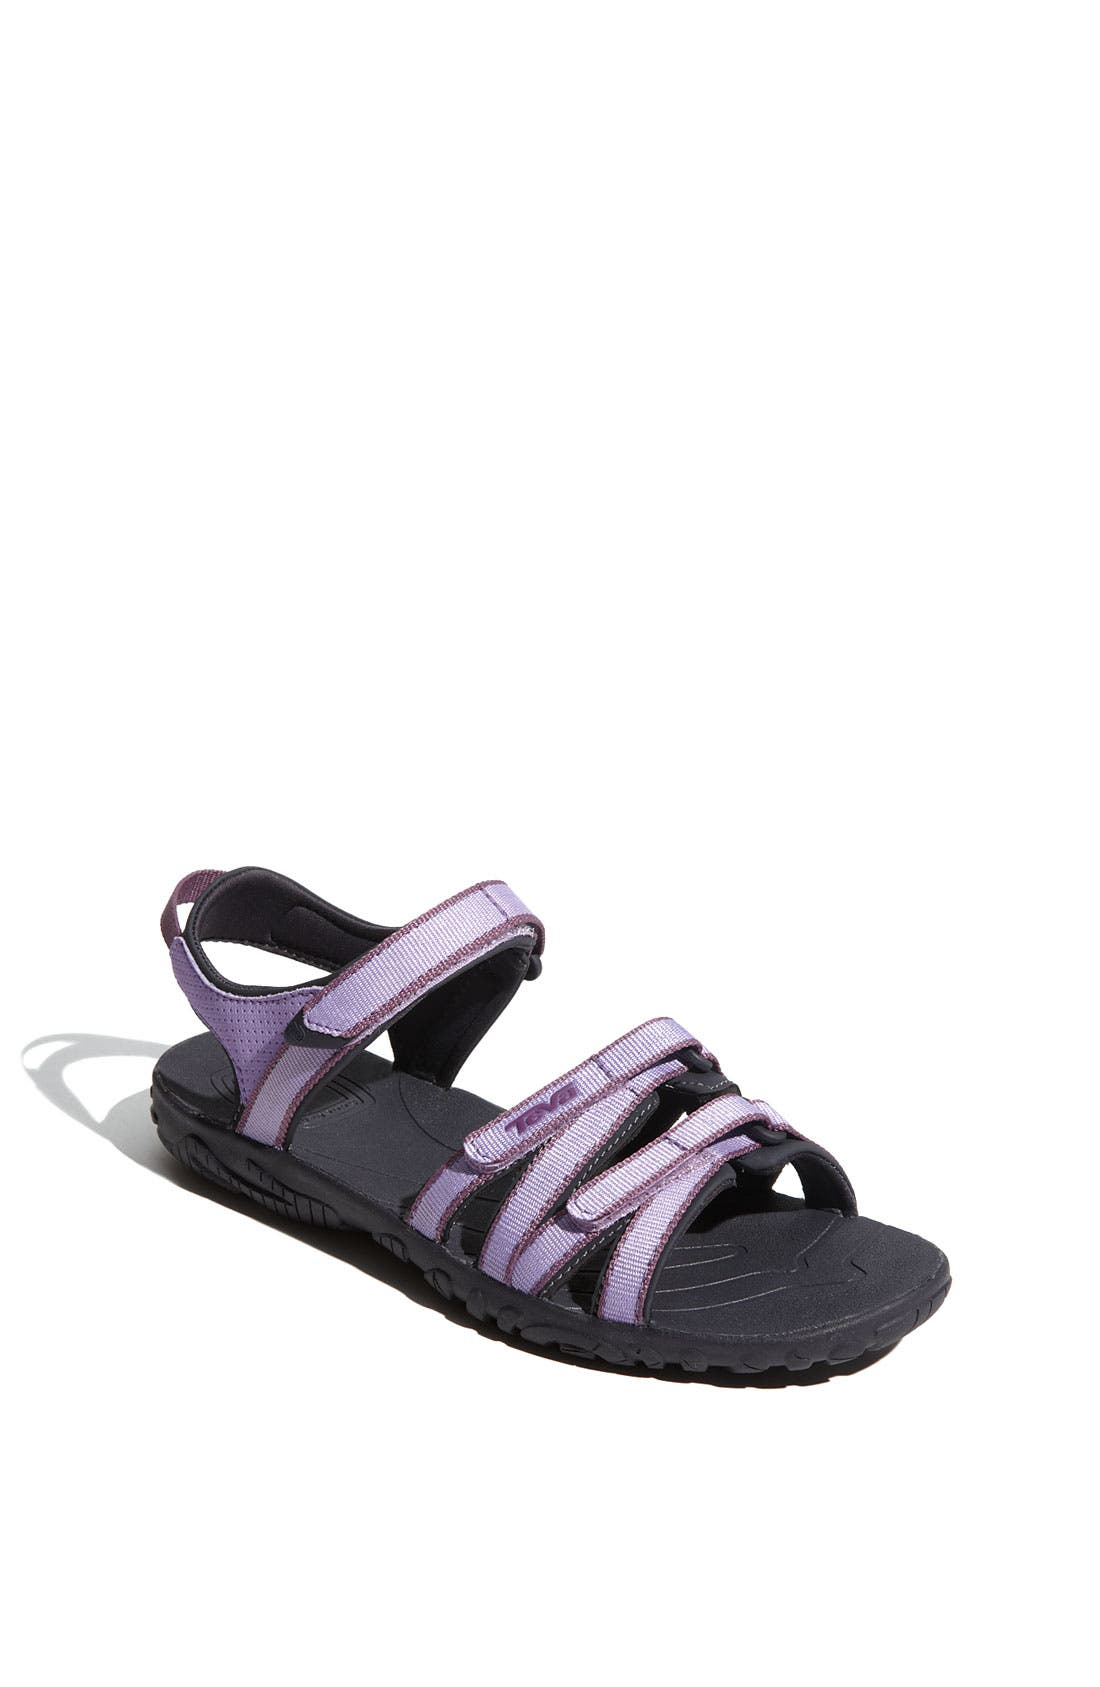 Alternate Image 1 Selected - Teva 'Tirra' Sandal (Toddler, Little Kid & Big Kid)